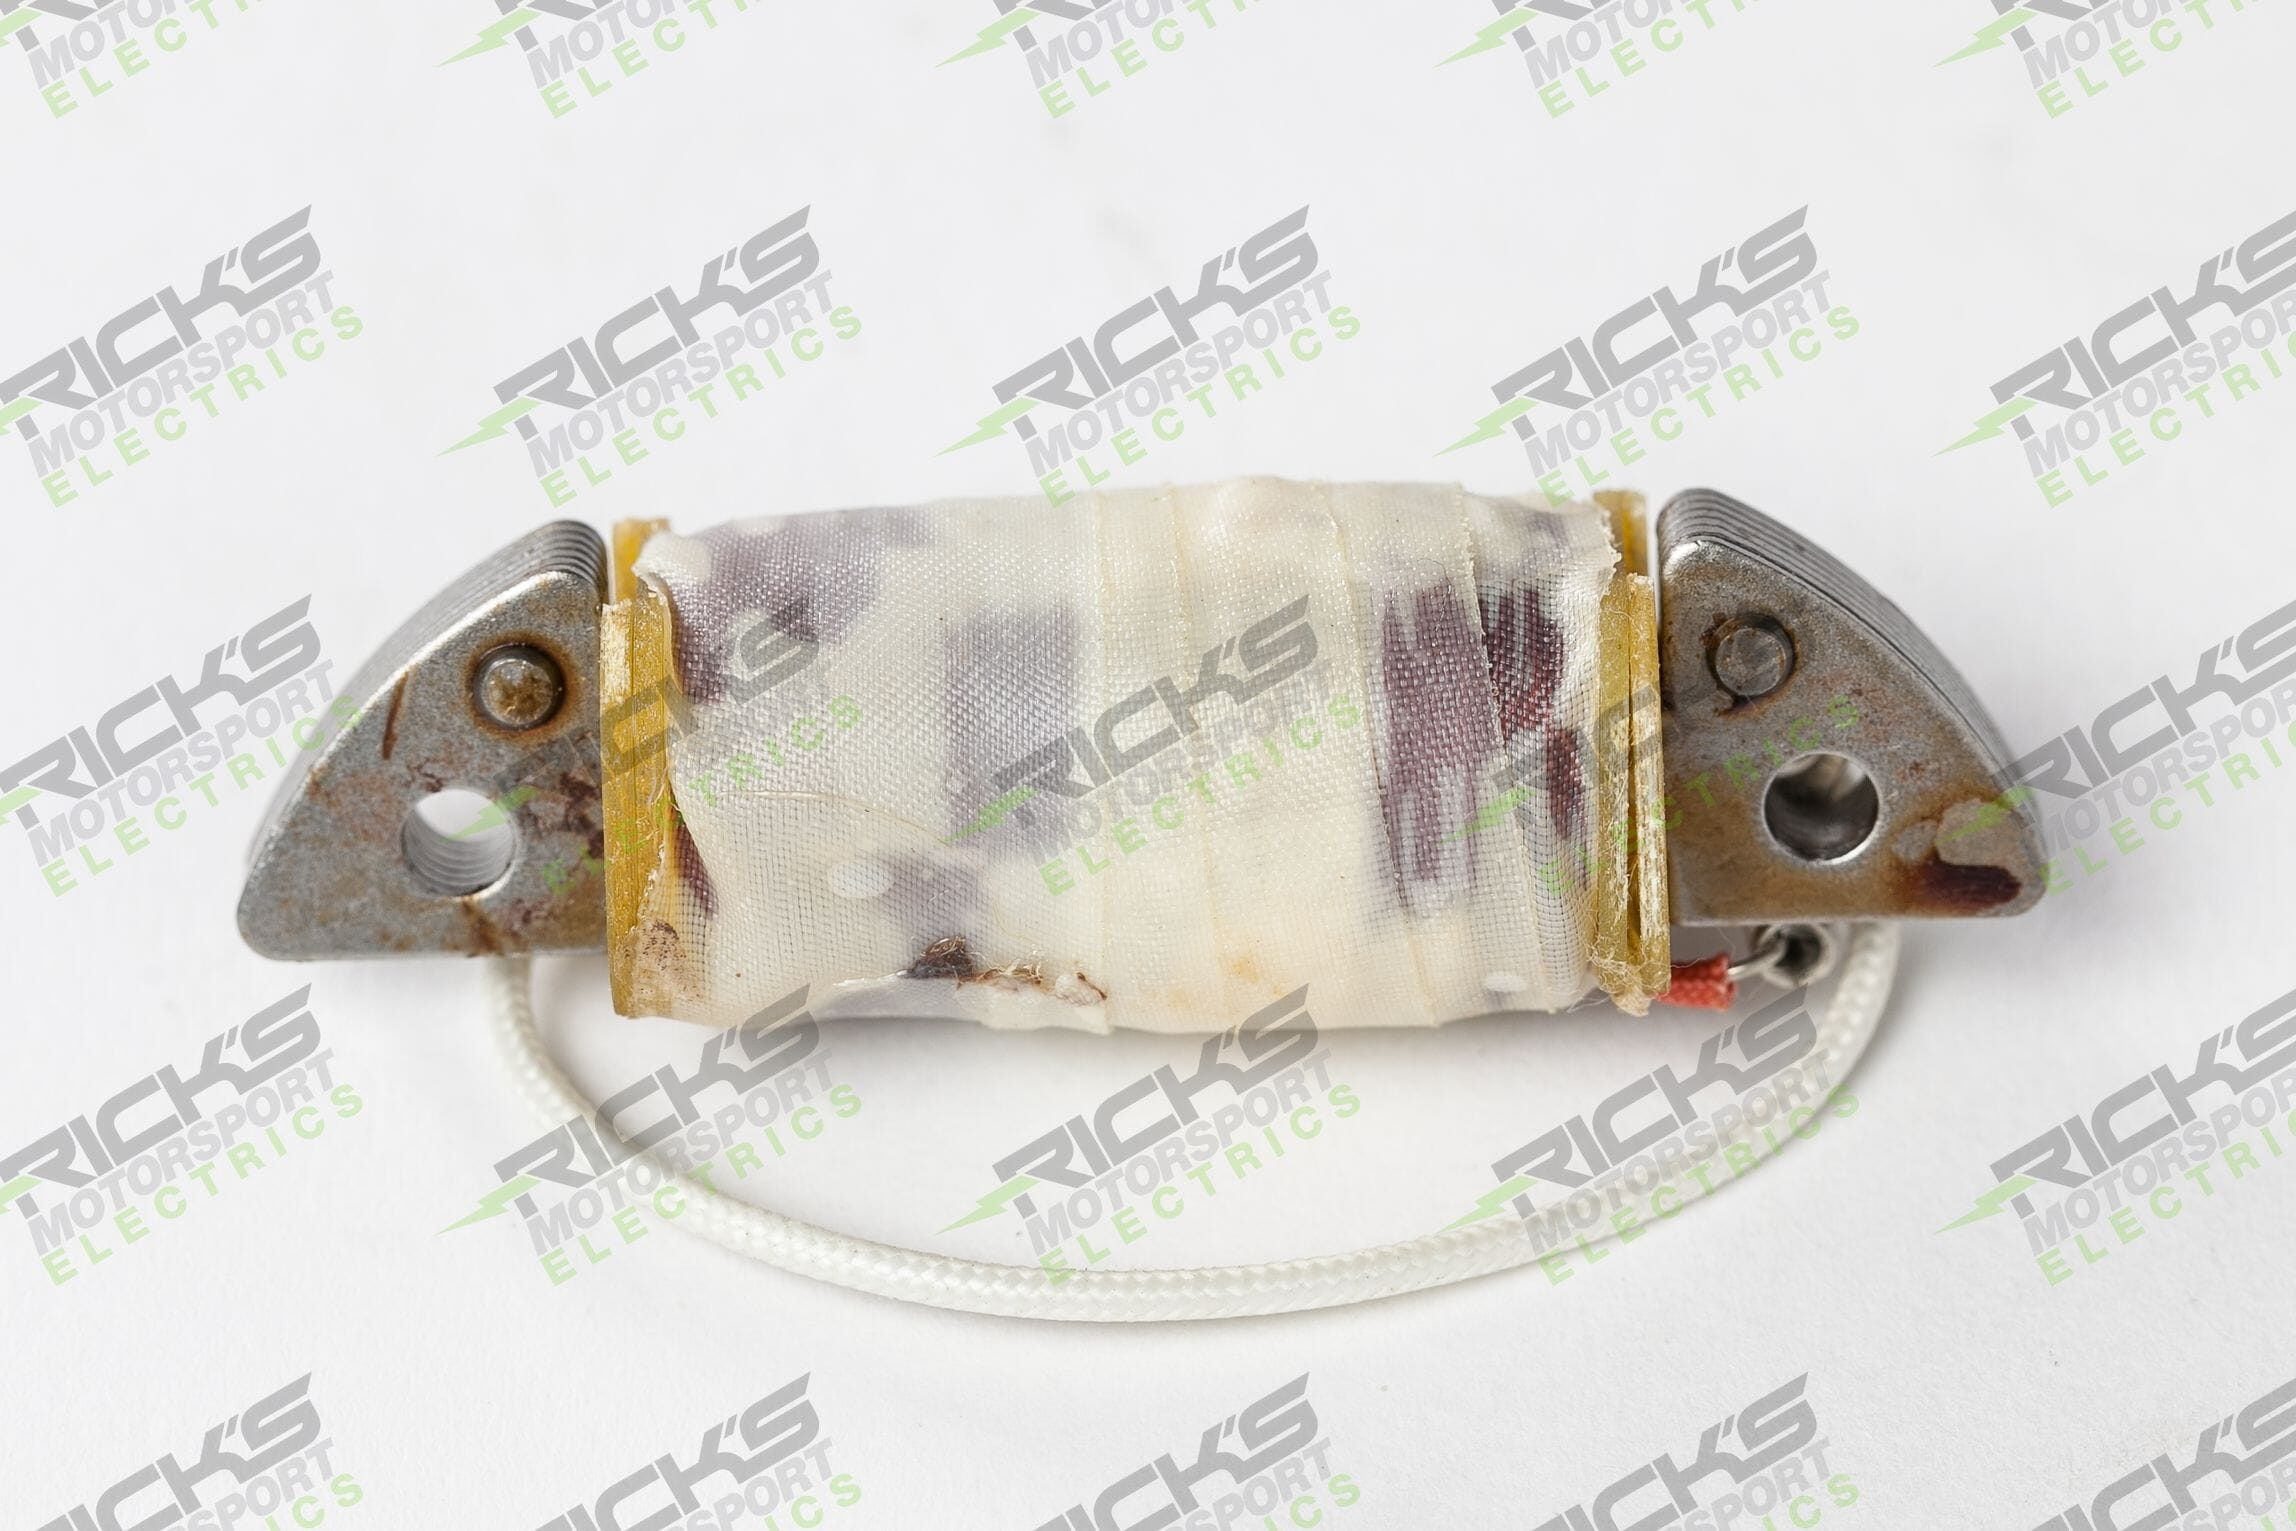 Ignition Source Coil For Yamaha YFM 200 Moto 4 1986 1987 Stator Pickup Coil